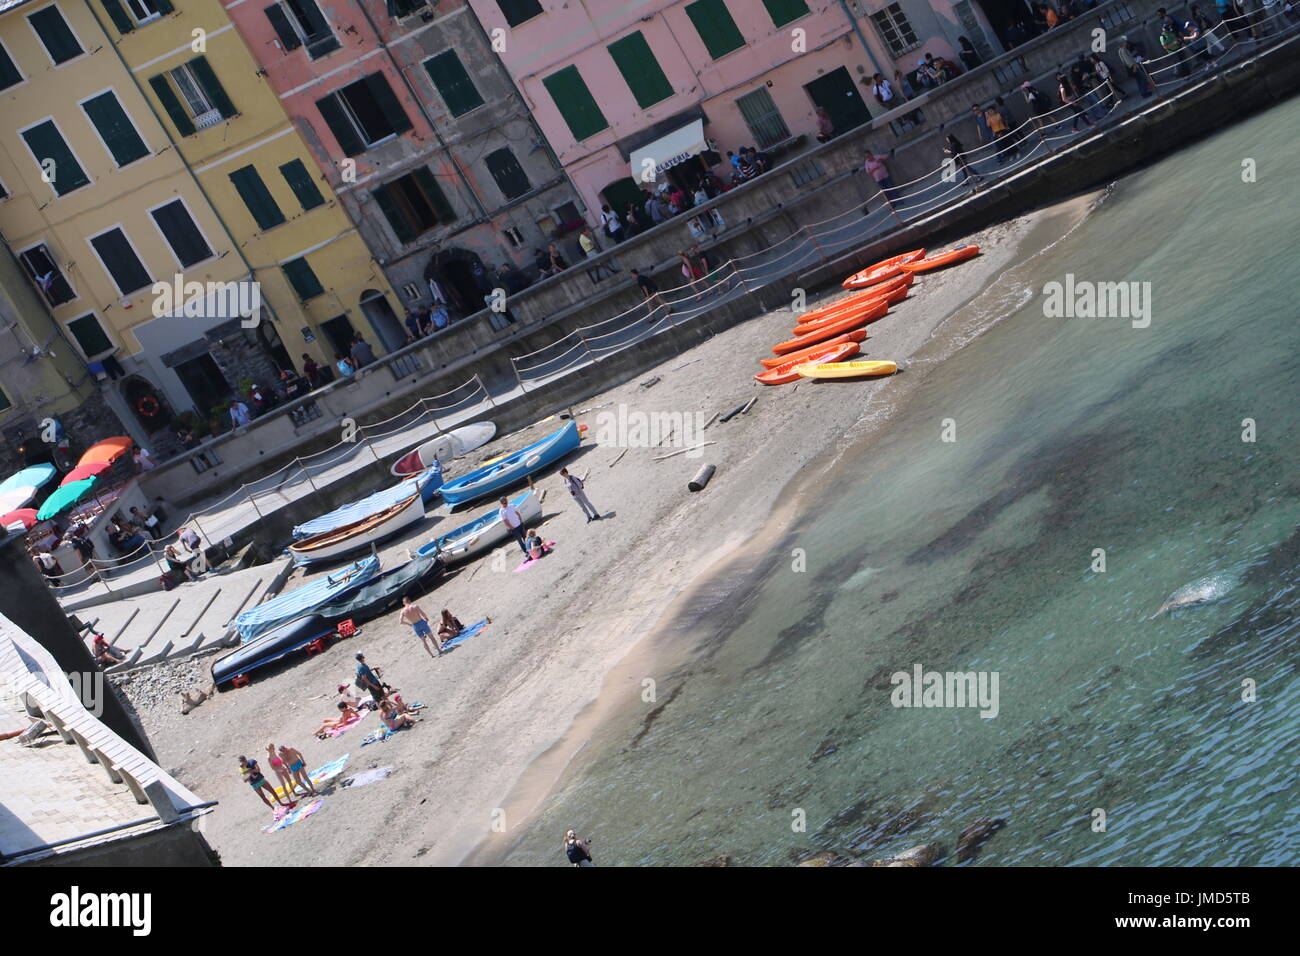 Small beach between colourful buildings where people sunbathe in one of the villages in Cinque Terre, Italy - Stock Image